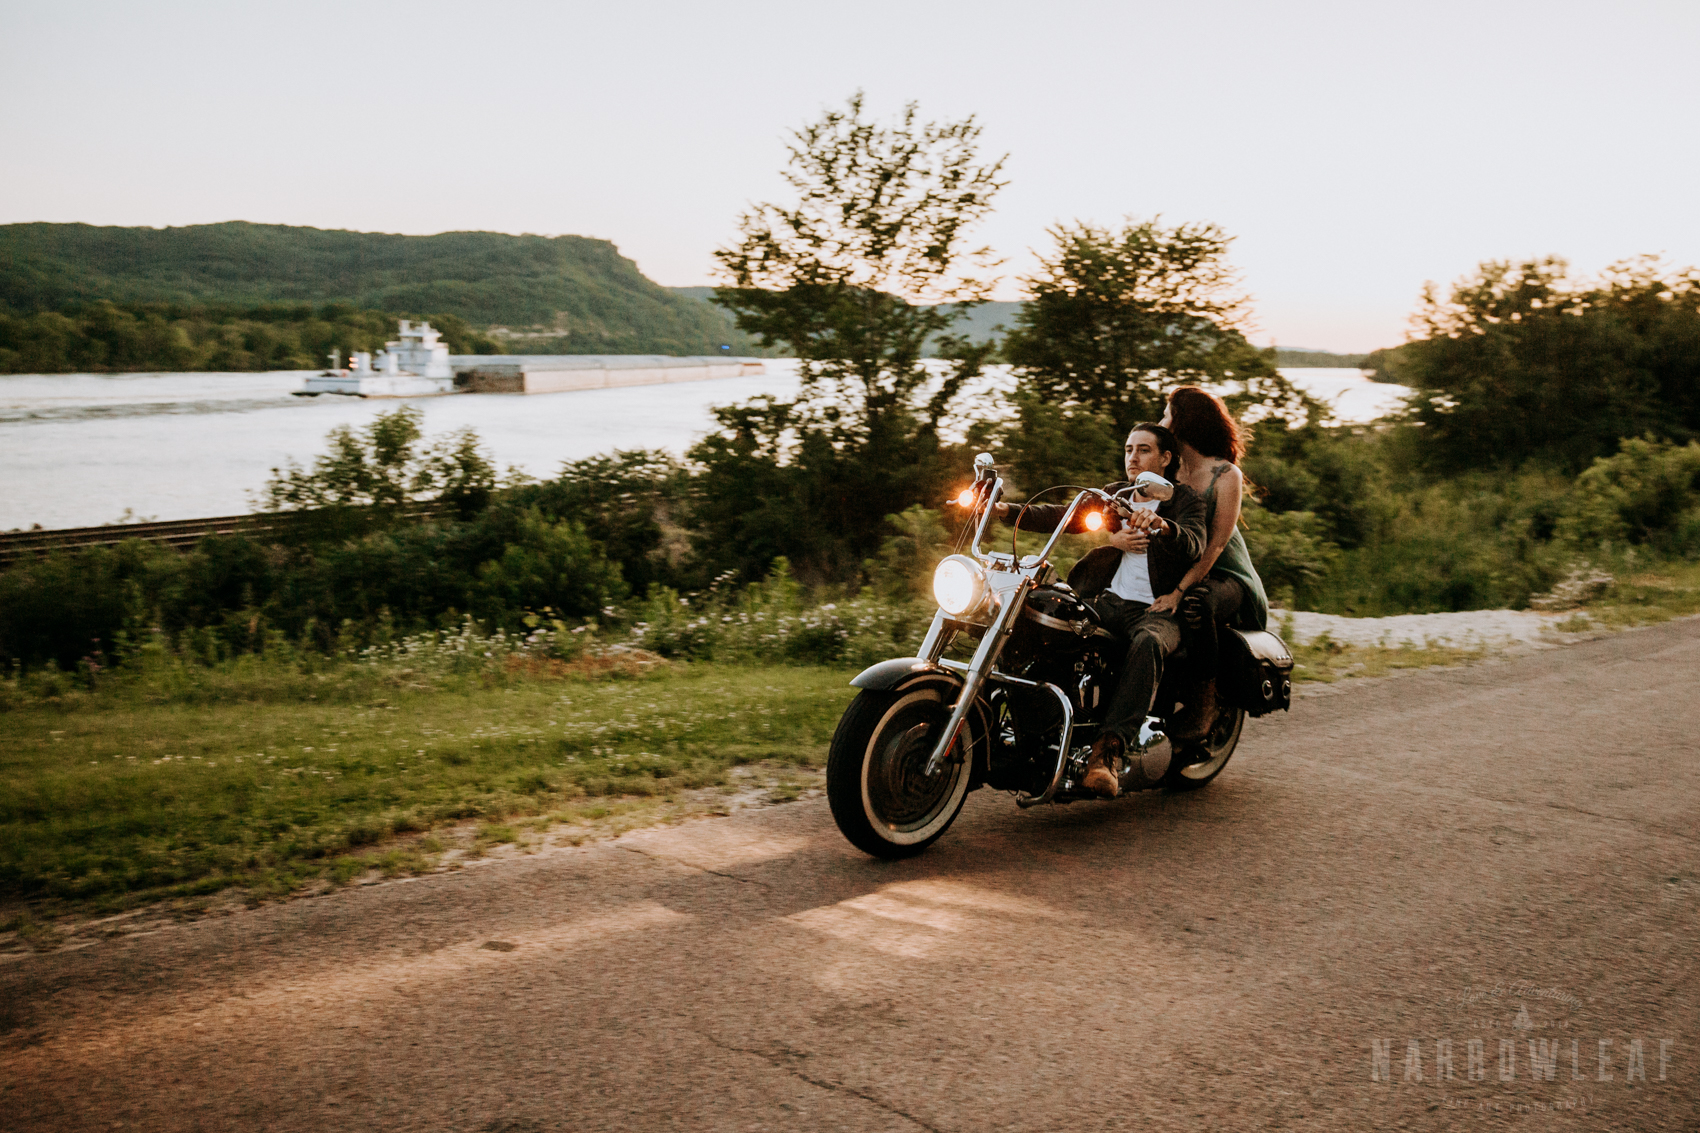 Trempealeau-wi-moody-engagement-motorcycle-NarrowLeaf-love-and-adventure-Photography-13.jpg